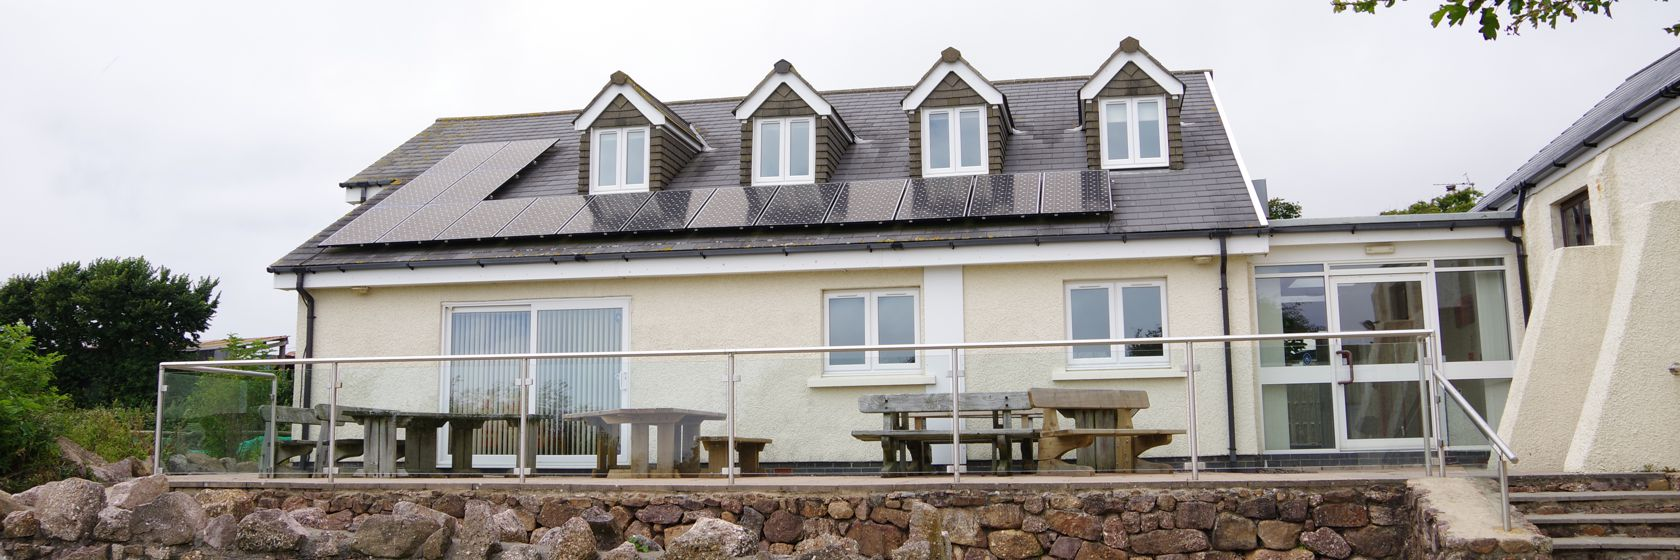 Rhossili Bunkhouse booking information